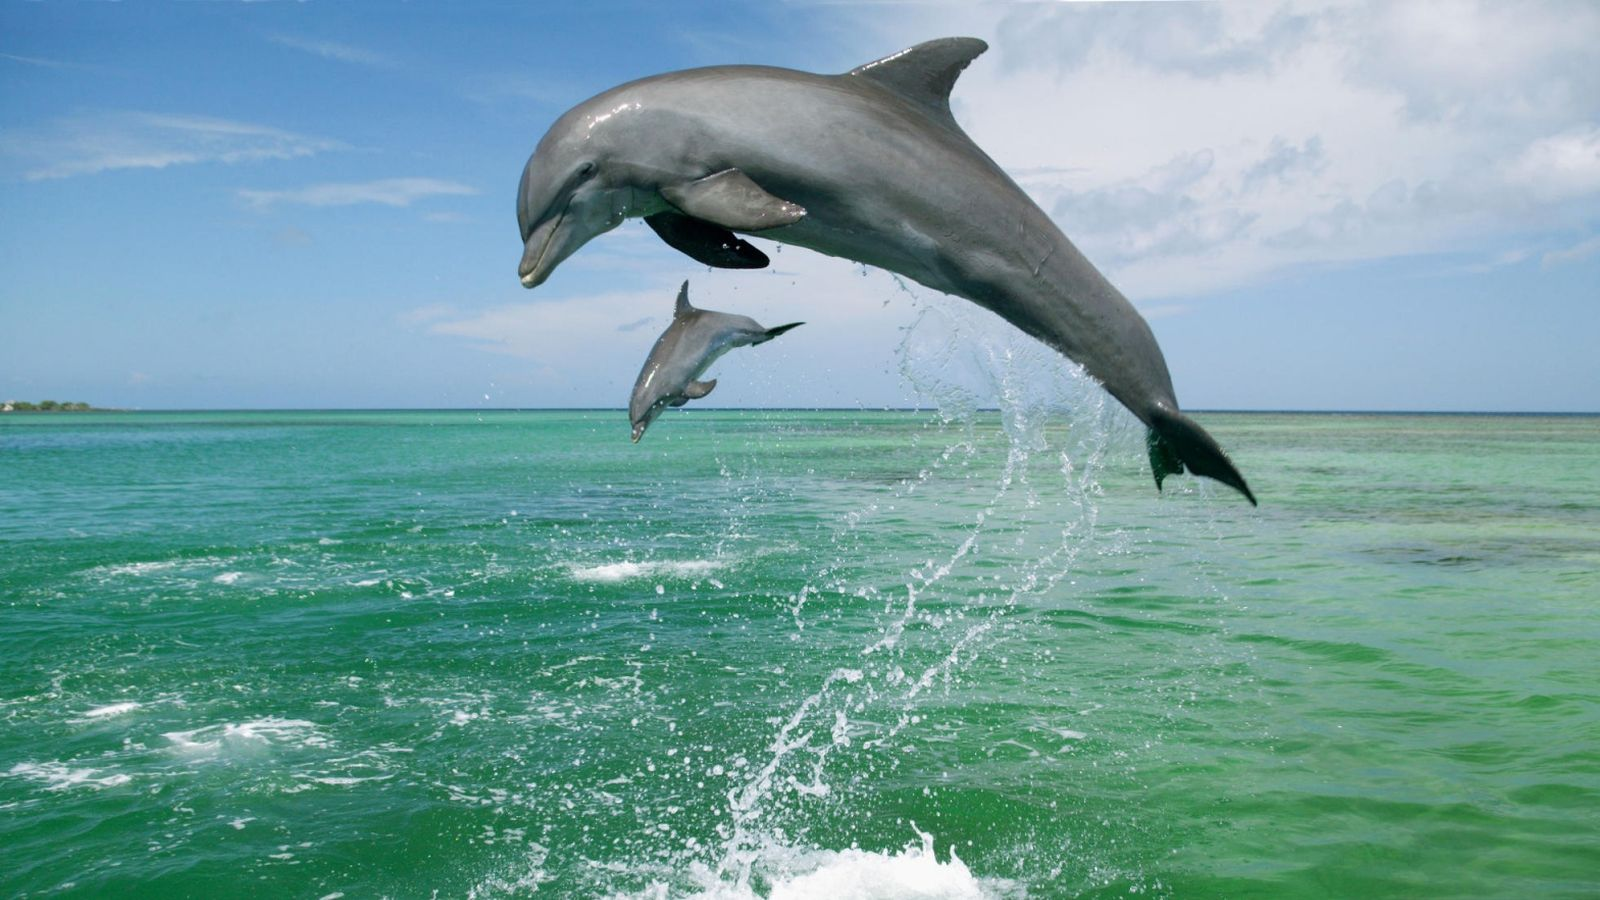 bottlenose_dolphins_tursiops_truncatus_caribbean_sea-wallpaper-1600x900.jpg